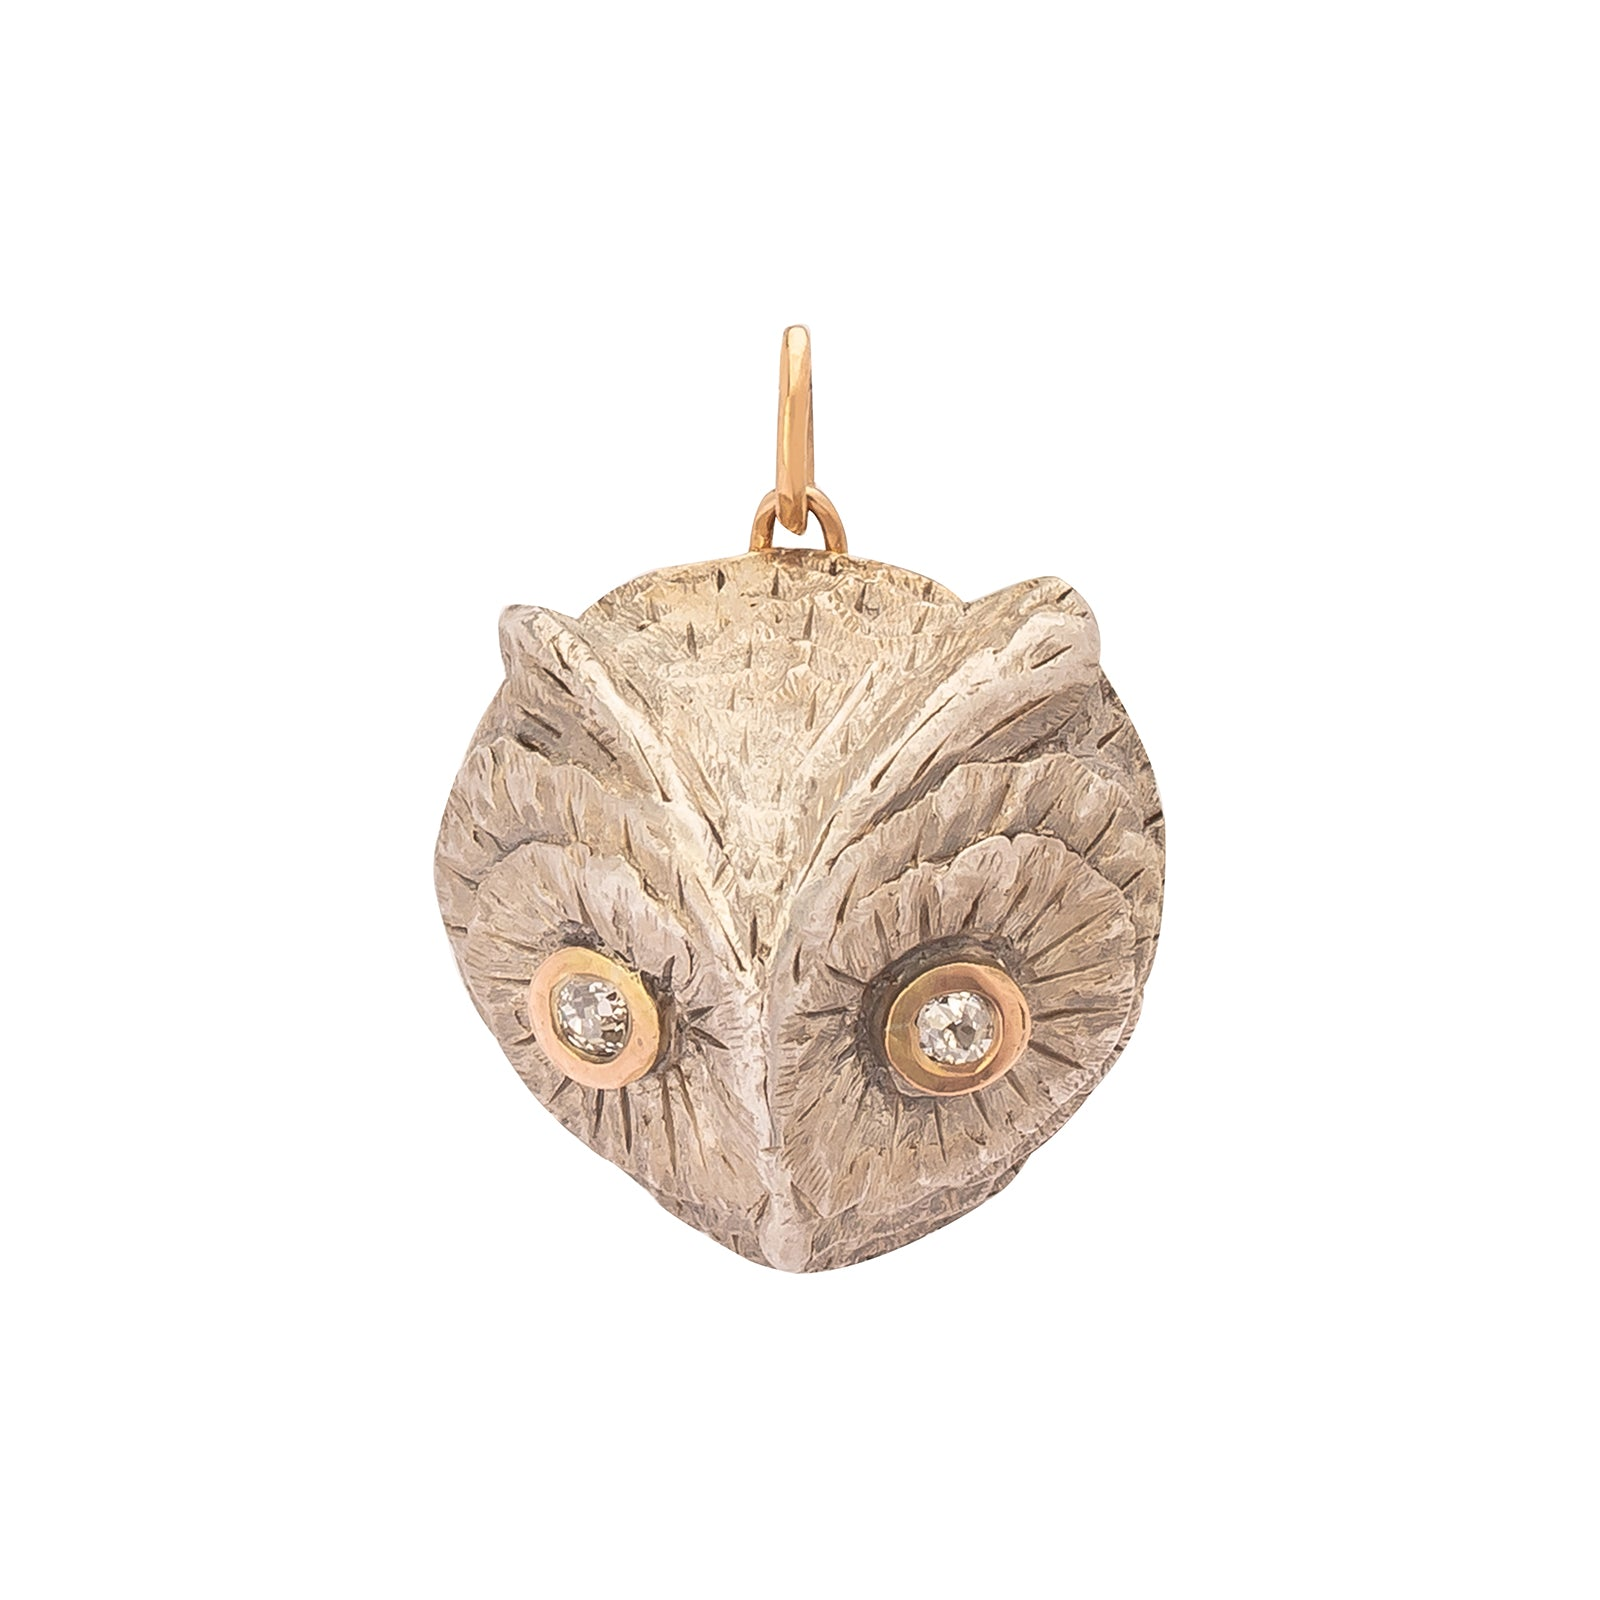 Antique & Vintage Jewelry Diamond Eyed Owl Pendant - Charms & Pendants - Broken English Jewelry